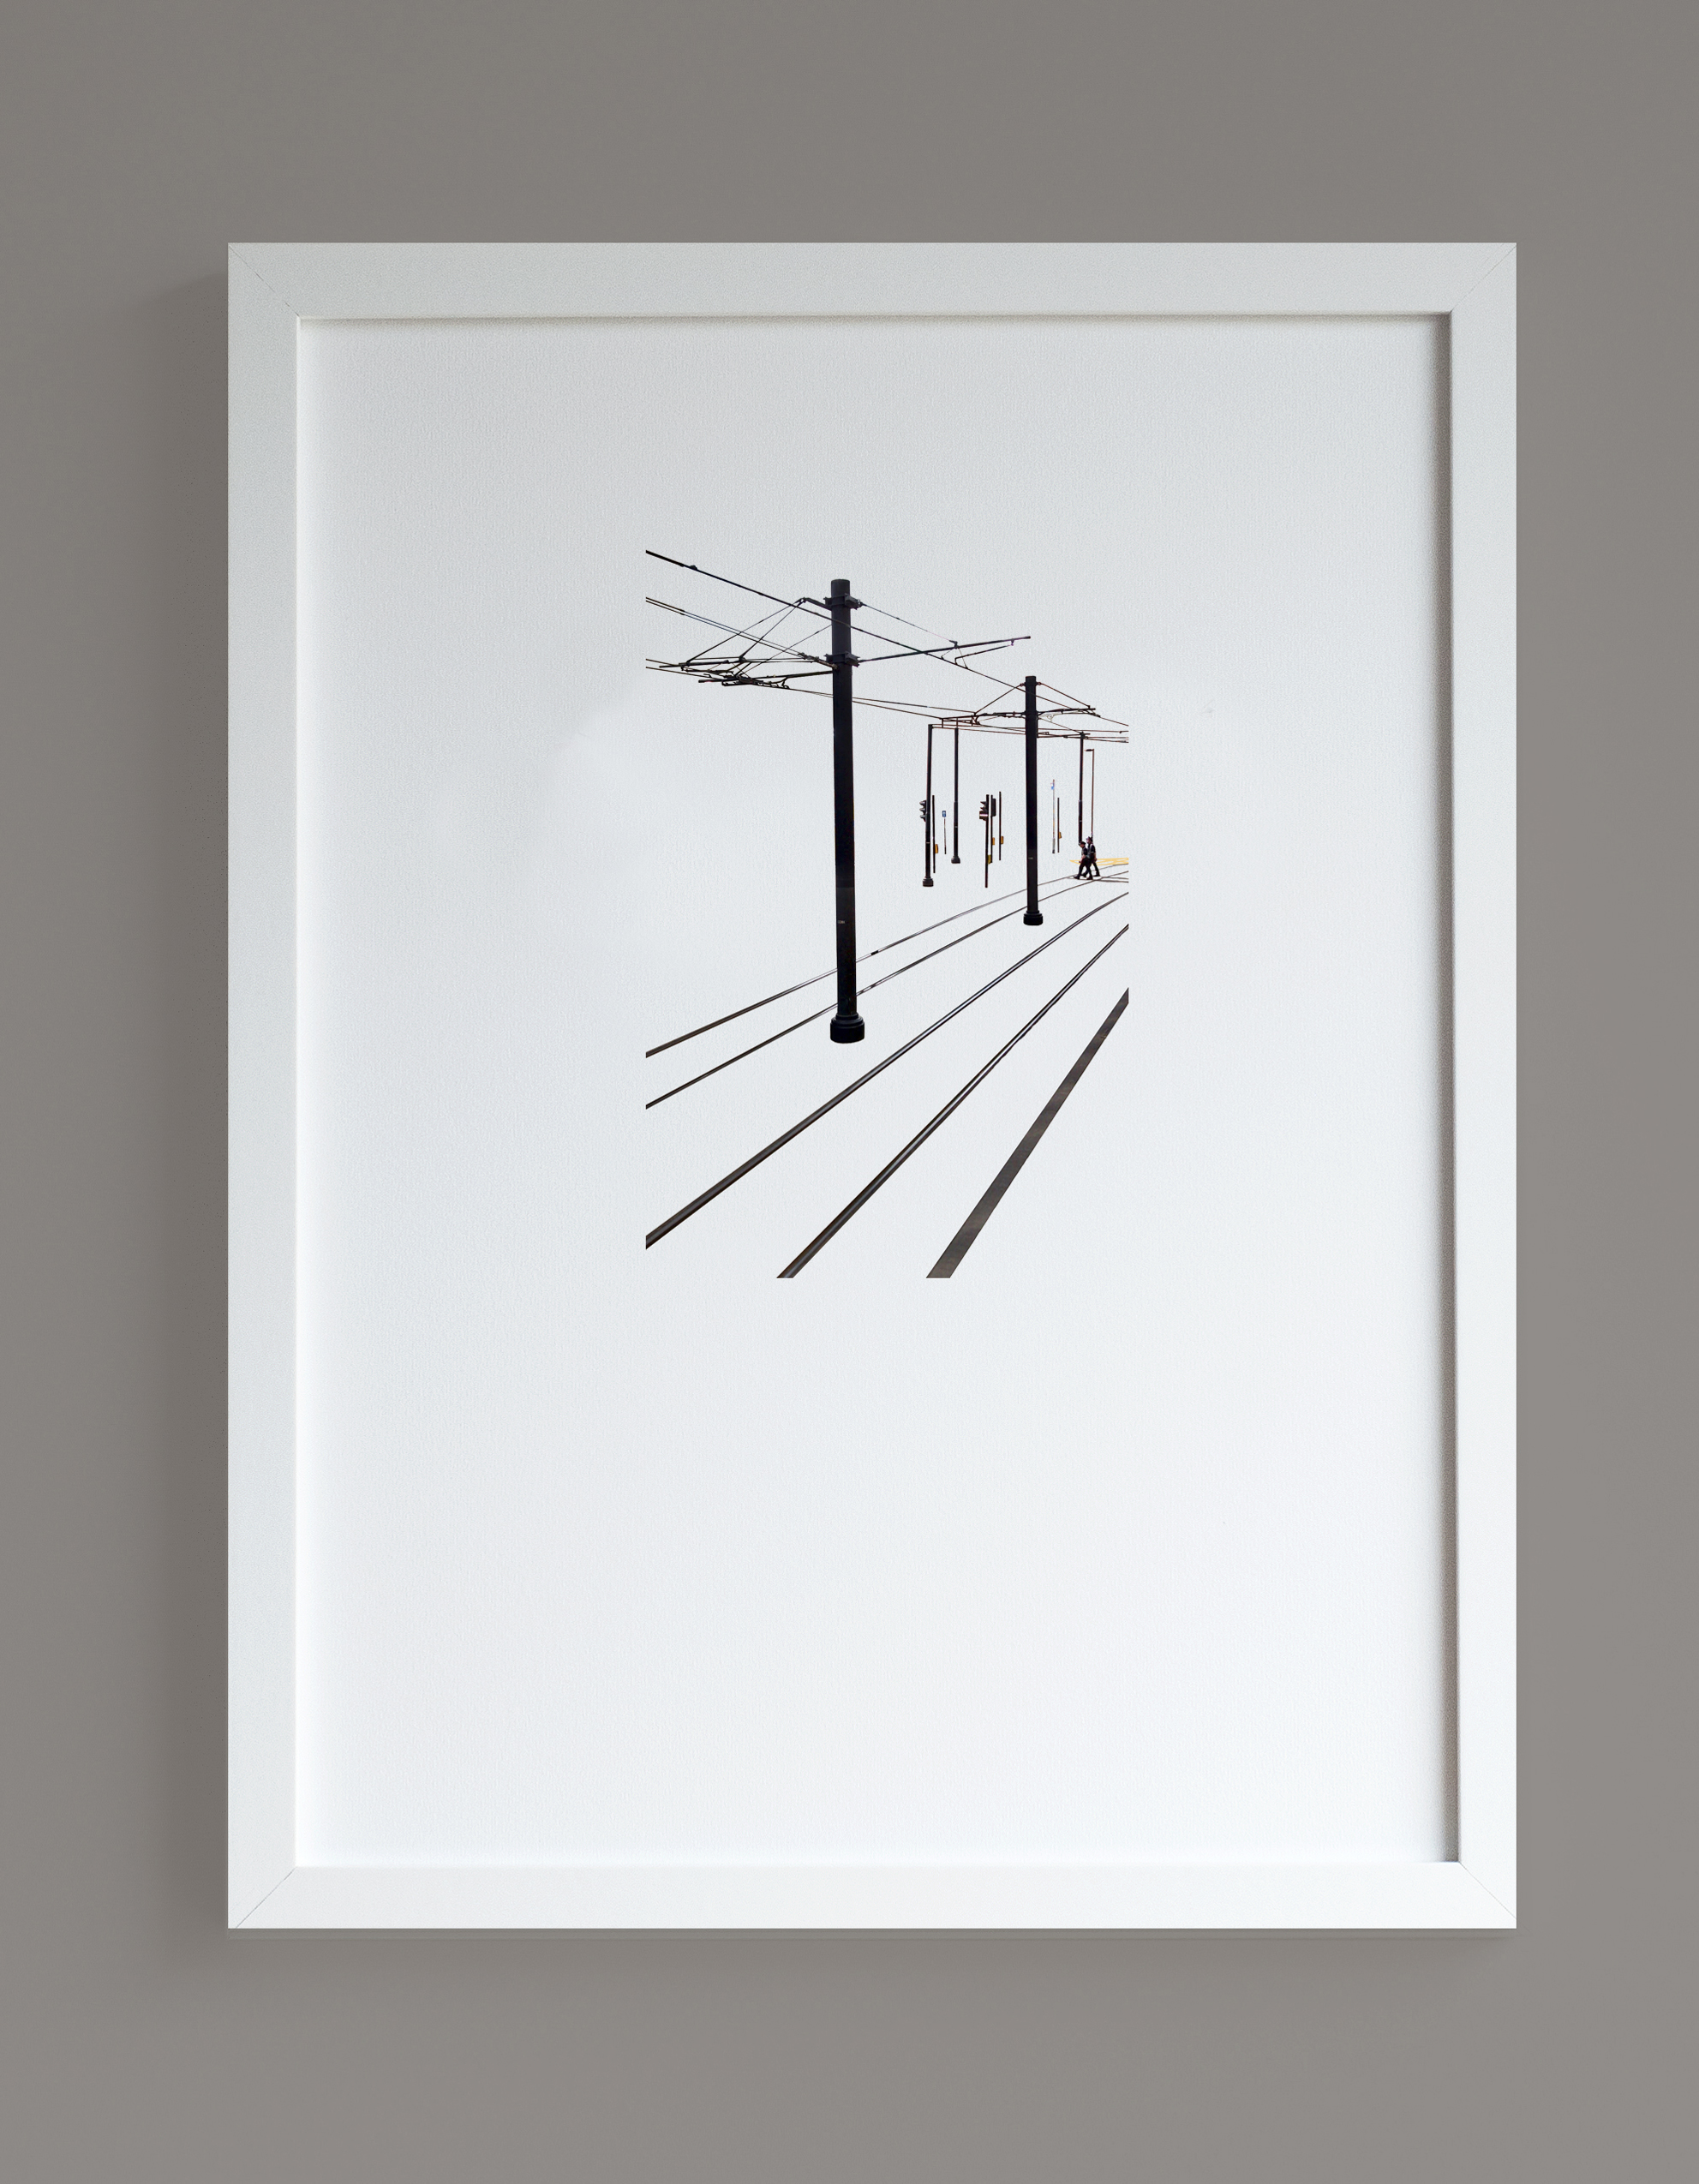 Image of framed print featuring tram tracks photographic print